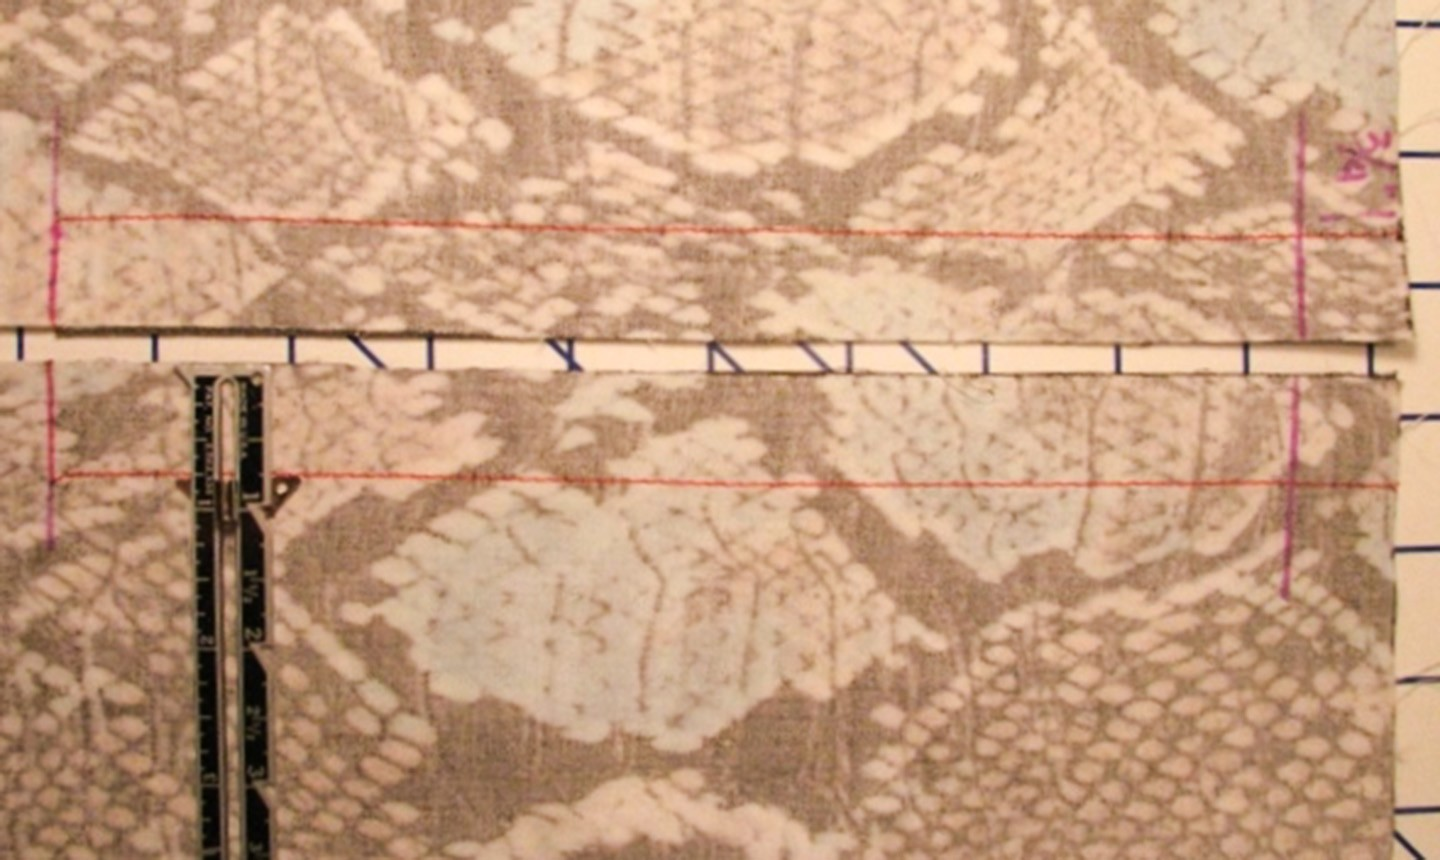 fabric marked for exposed zipper